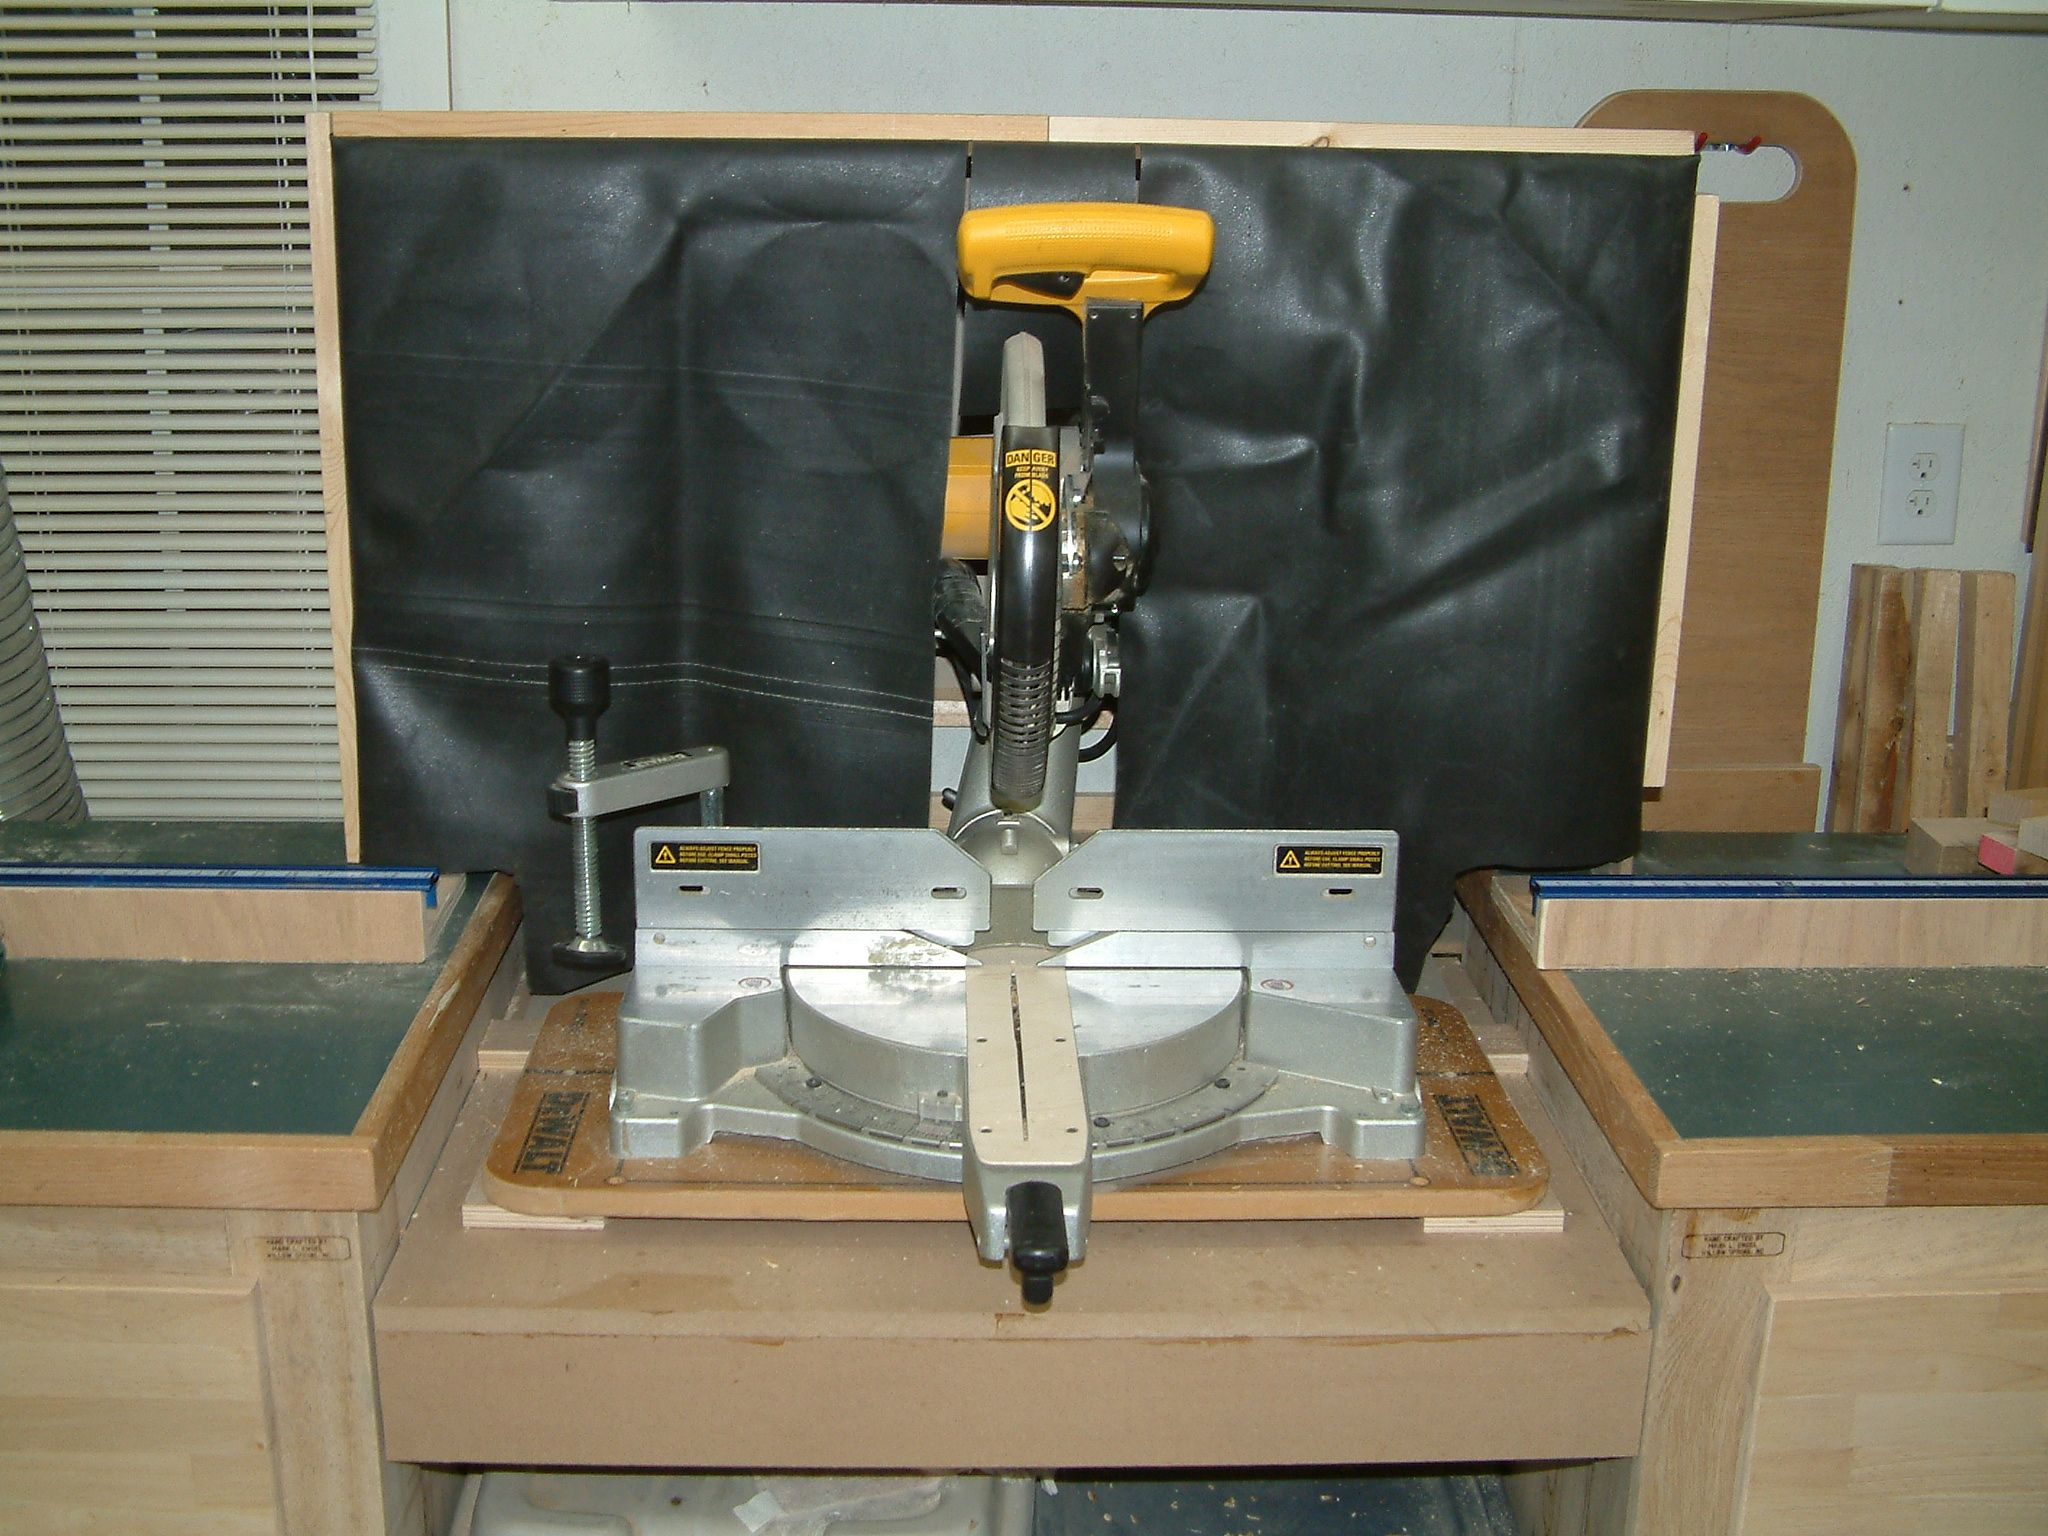 Miter Saw Dust Collection Hood Mitre Saw Dust Collection Miter Saw Shop Dust Collection